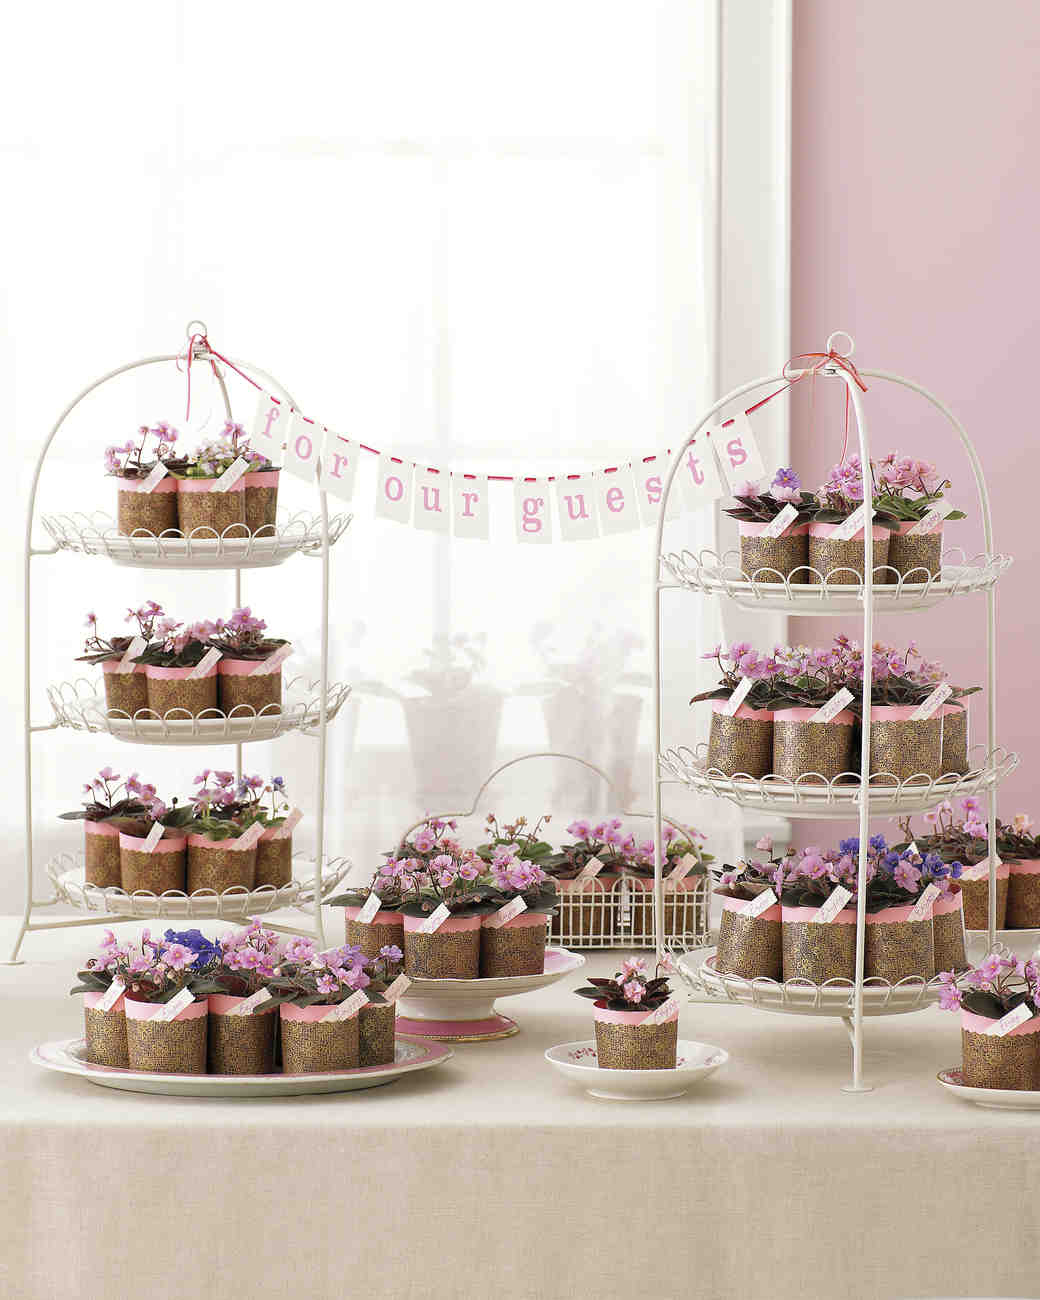 diy-bridal-shower-favors-african-violet-display-su07-0515.jpg